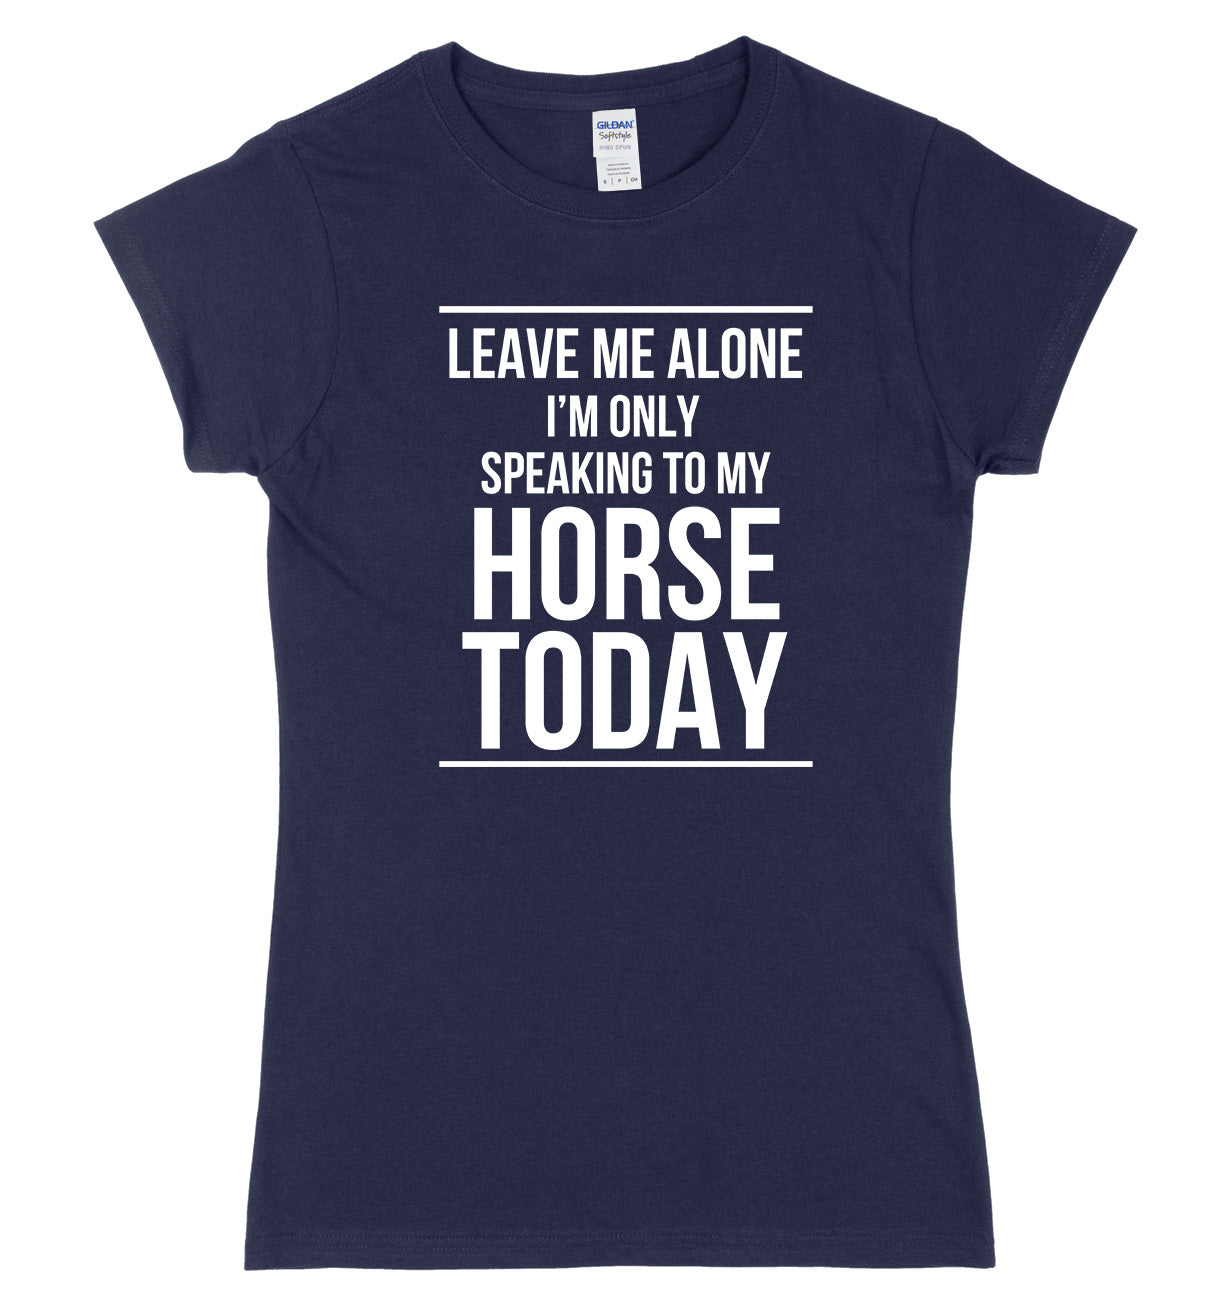 LEAVE ME ALONE I'M ONLY SPEAKING TO MY HORSE TODAY FUNNY WOMENS LADIES SLIM FIT  T-SHIRT